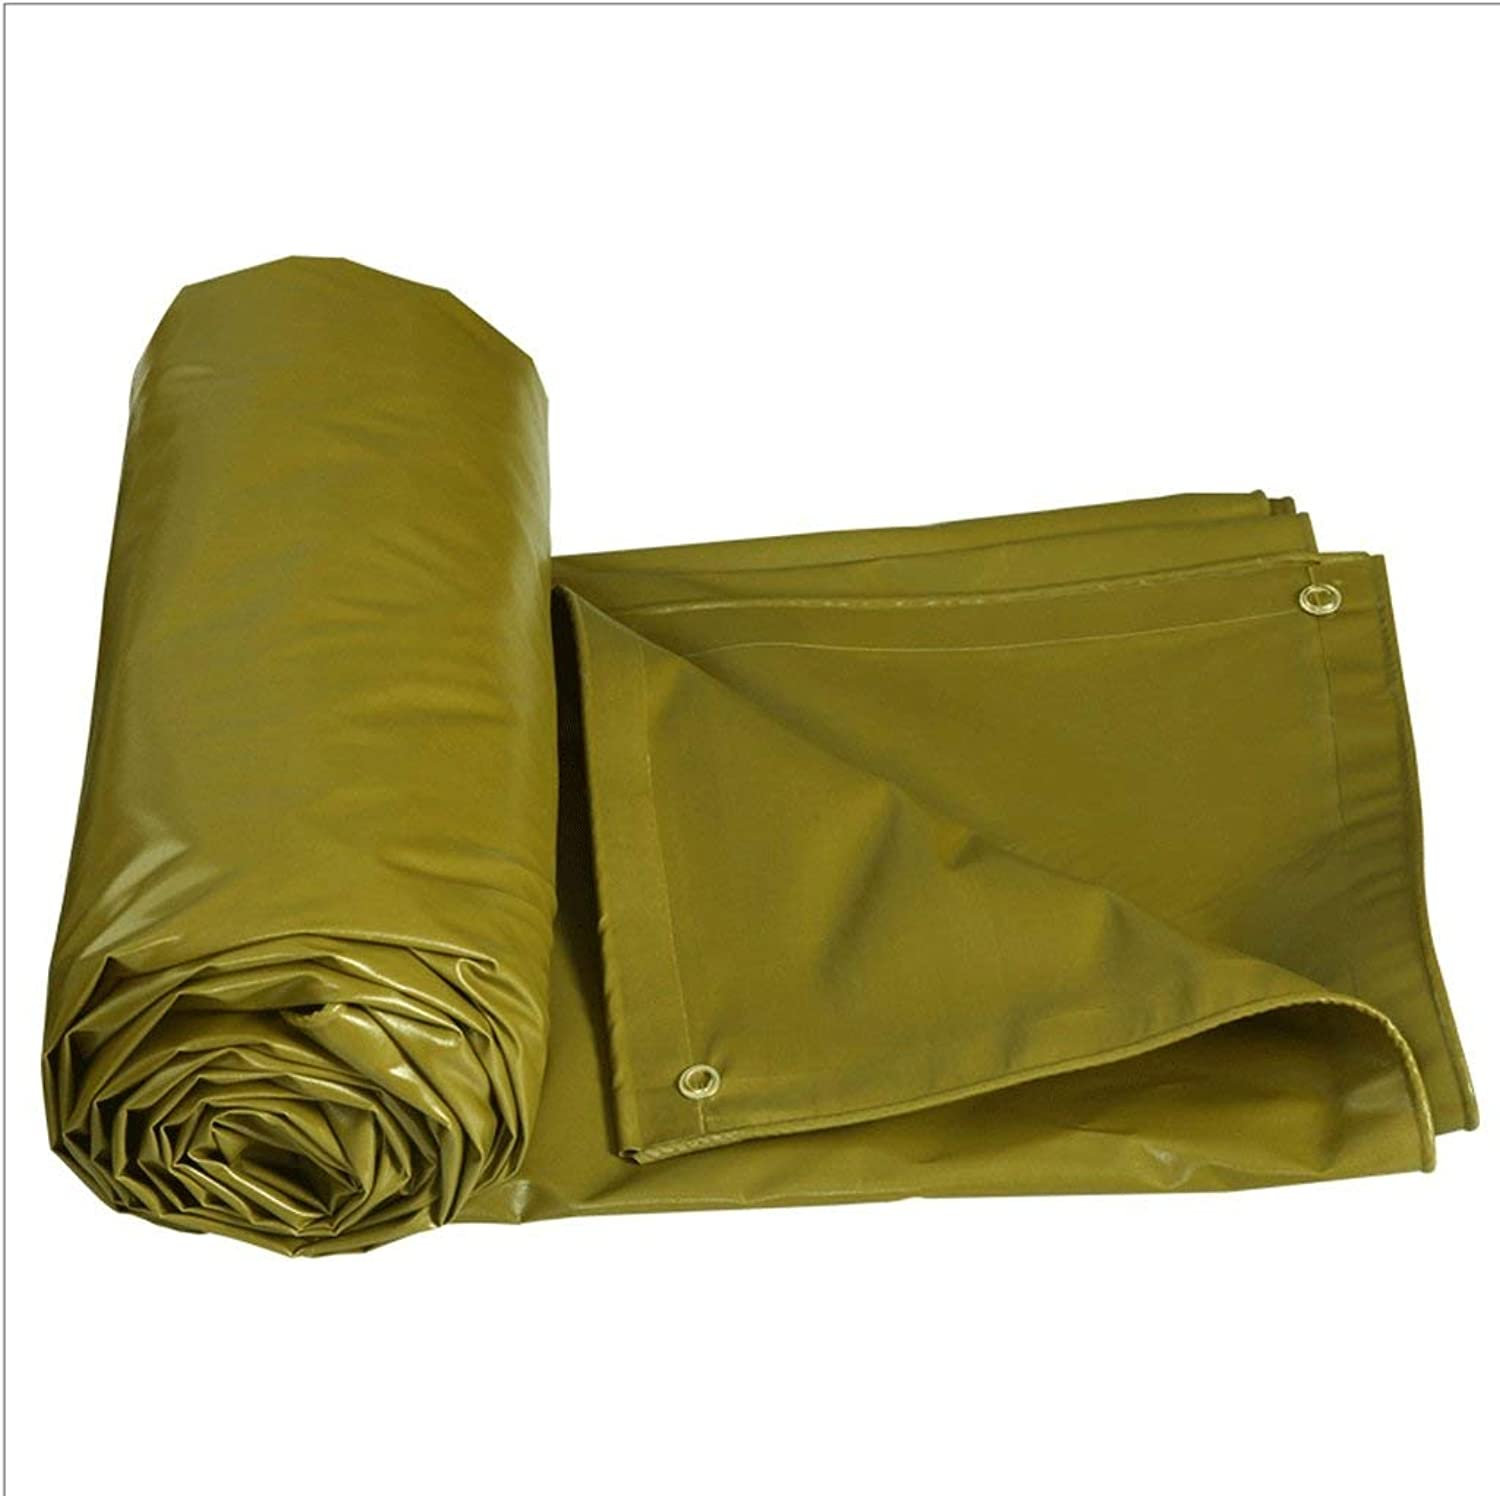 Tarpaulin Thick PVC Waterproof Sunscreen Warehouse Car Tarpaulin Outdoor Special Insulation Cloth Army Green 520G   Square Meter 100% Waterproof and UV Predection Carl Artbay Tarpaulin